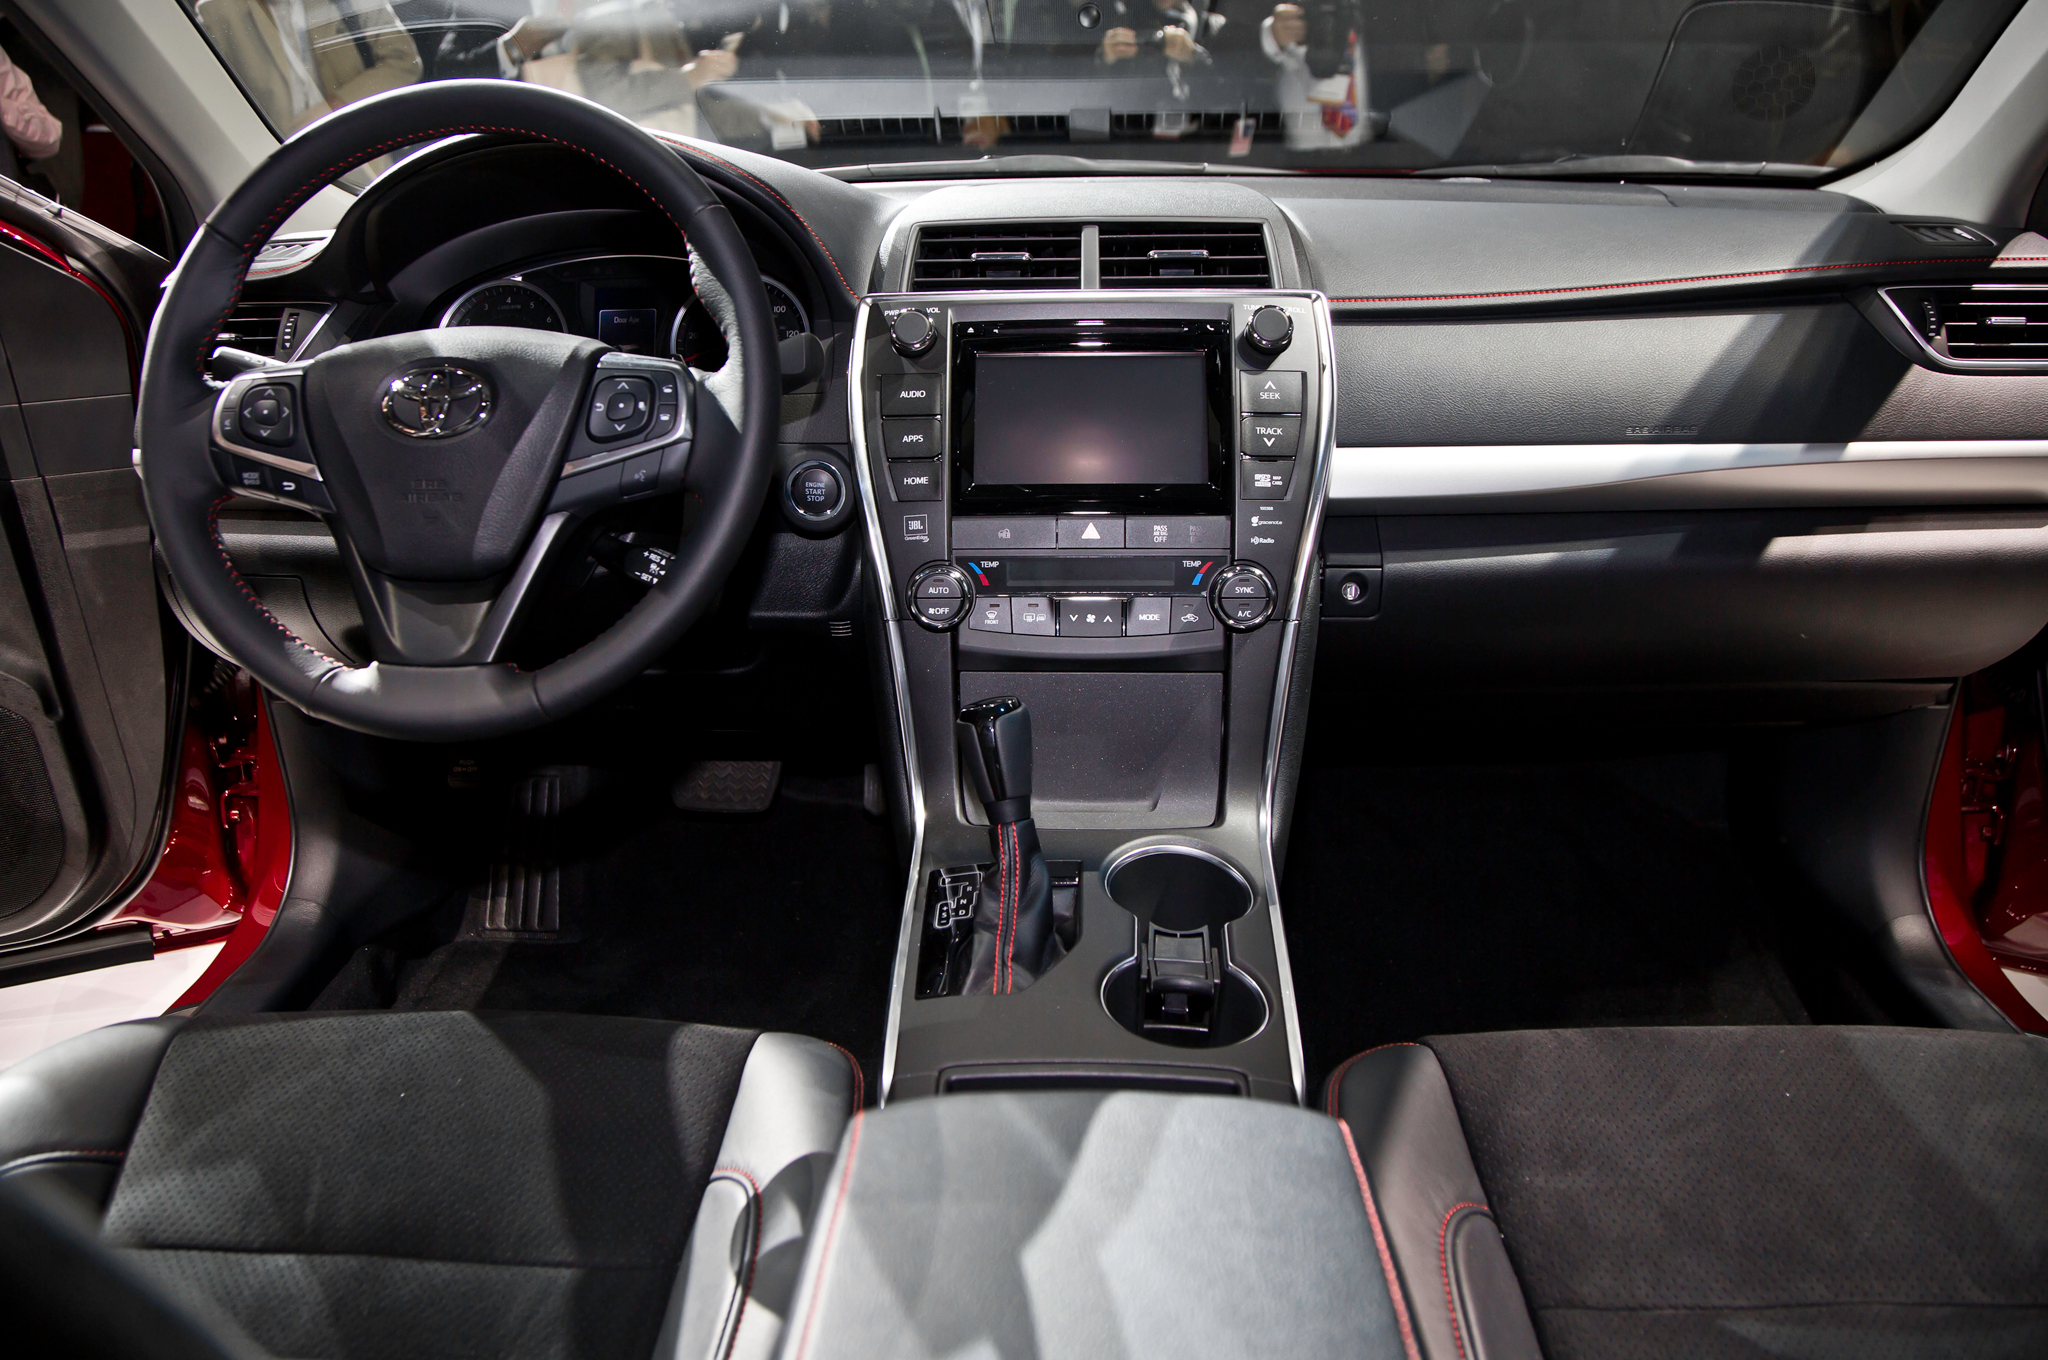 Prestige toyota reviews the 2015 camry - 2013 toyota camry interior parts ...